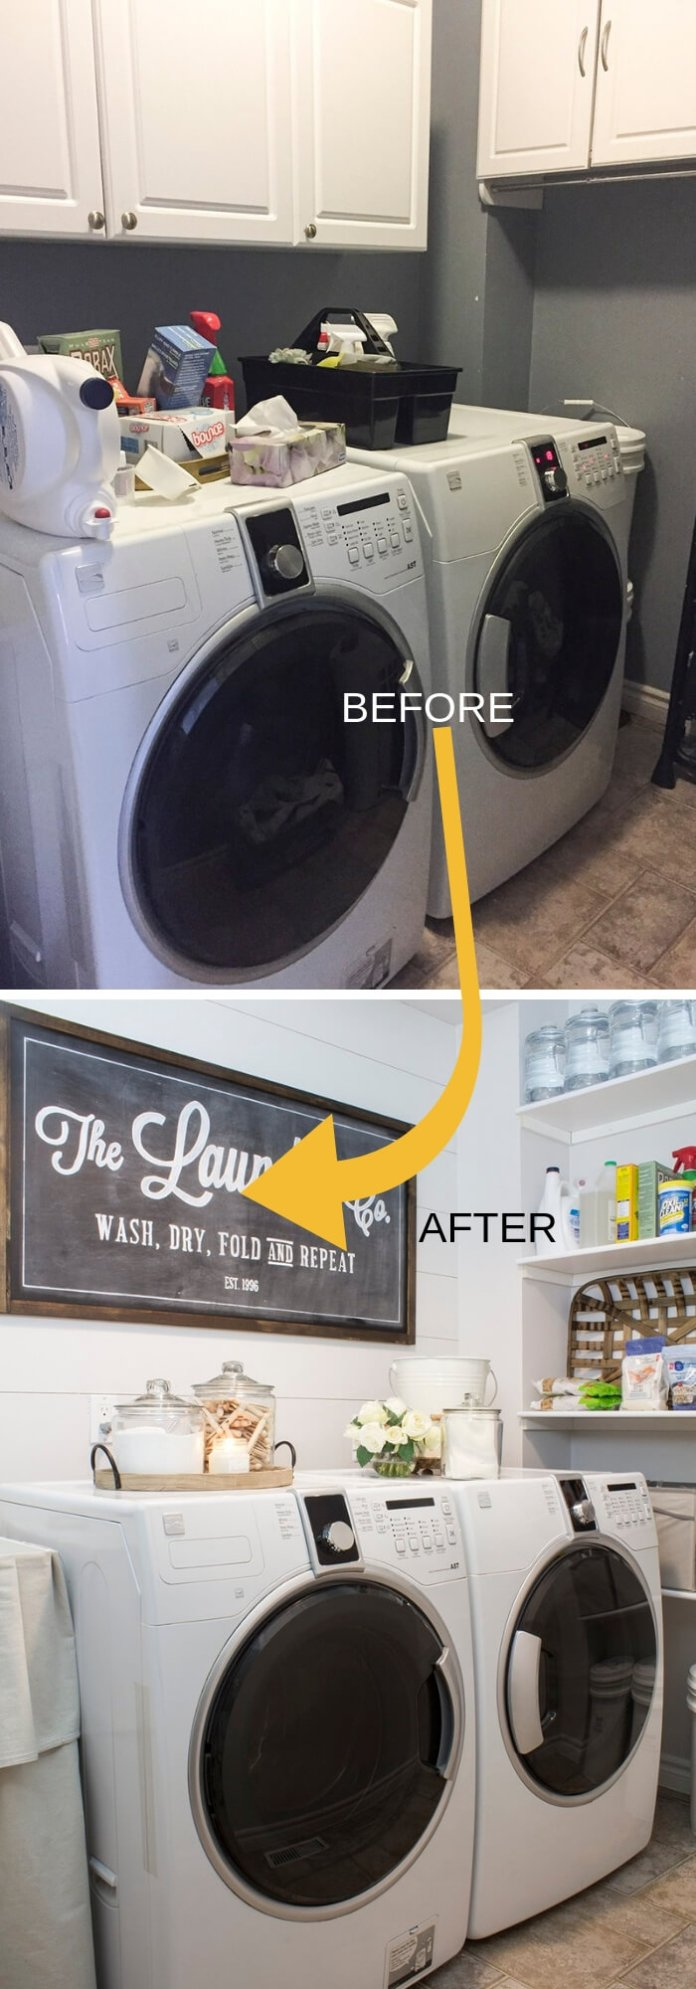 DIY Farmhouse Laundry Room Ideas: Farmhouse laundry room makeover